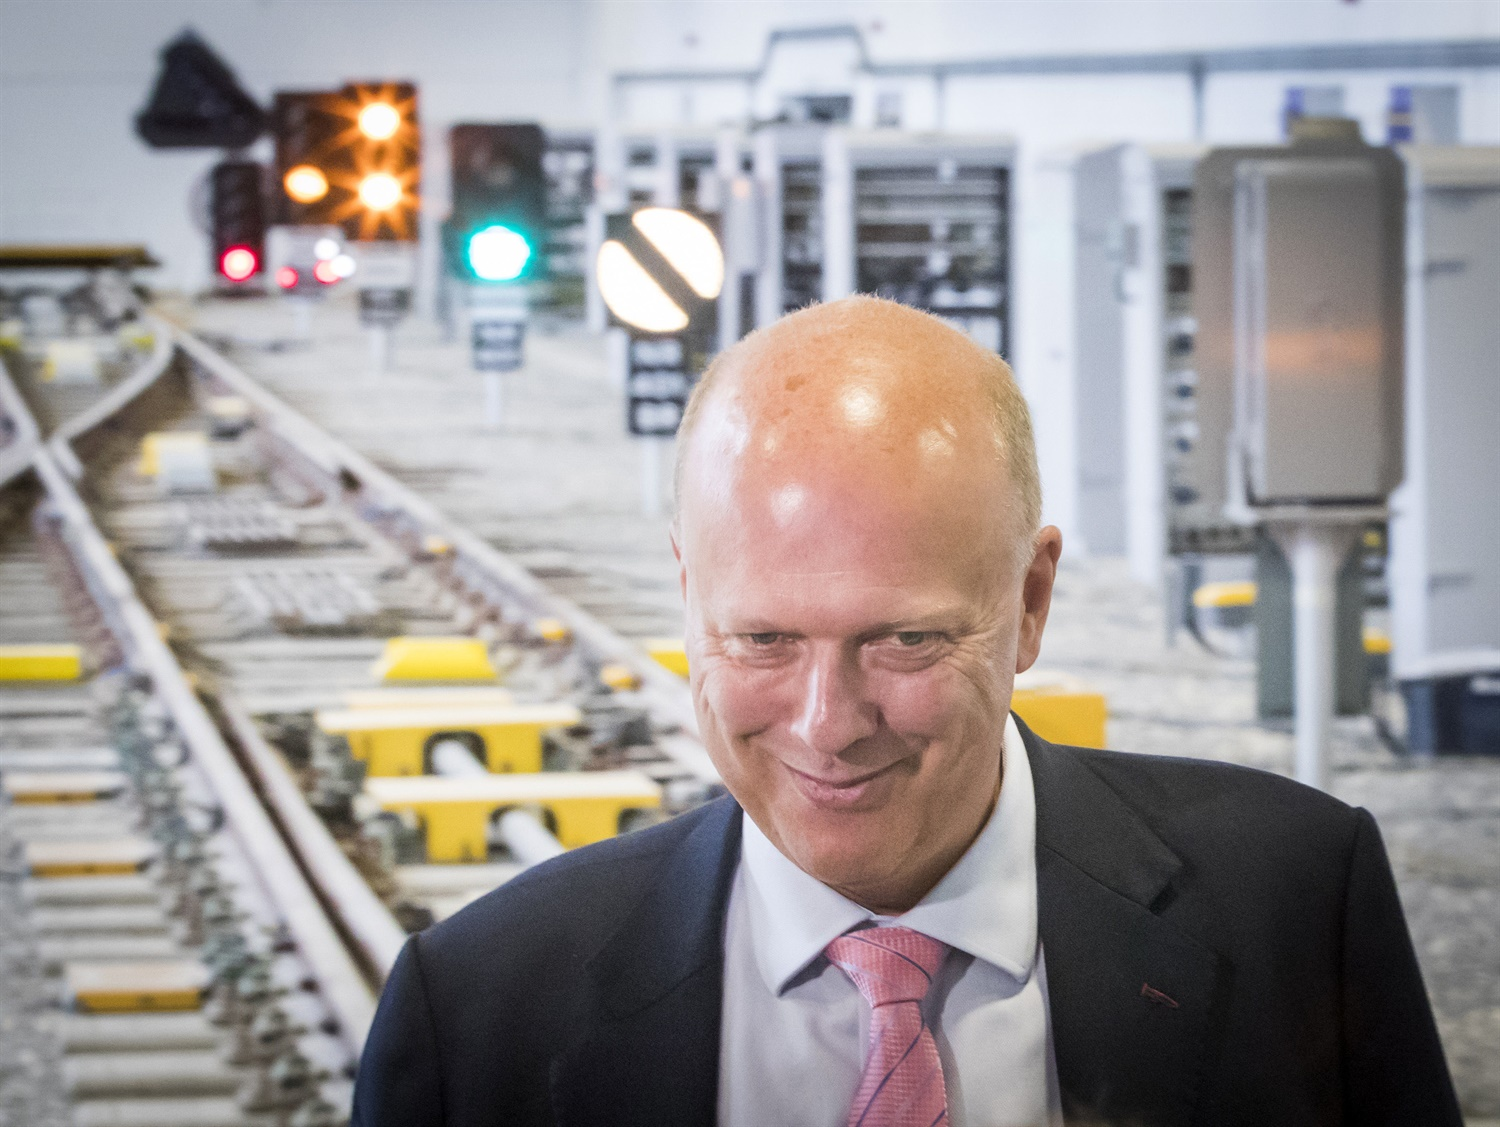 Major 2019 rail review led by BA boss will 'leave no stone unturned'